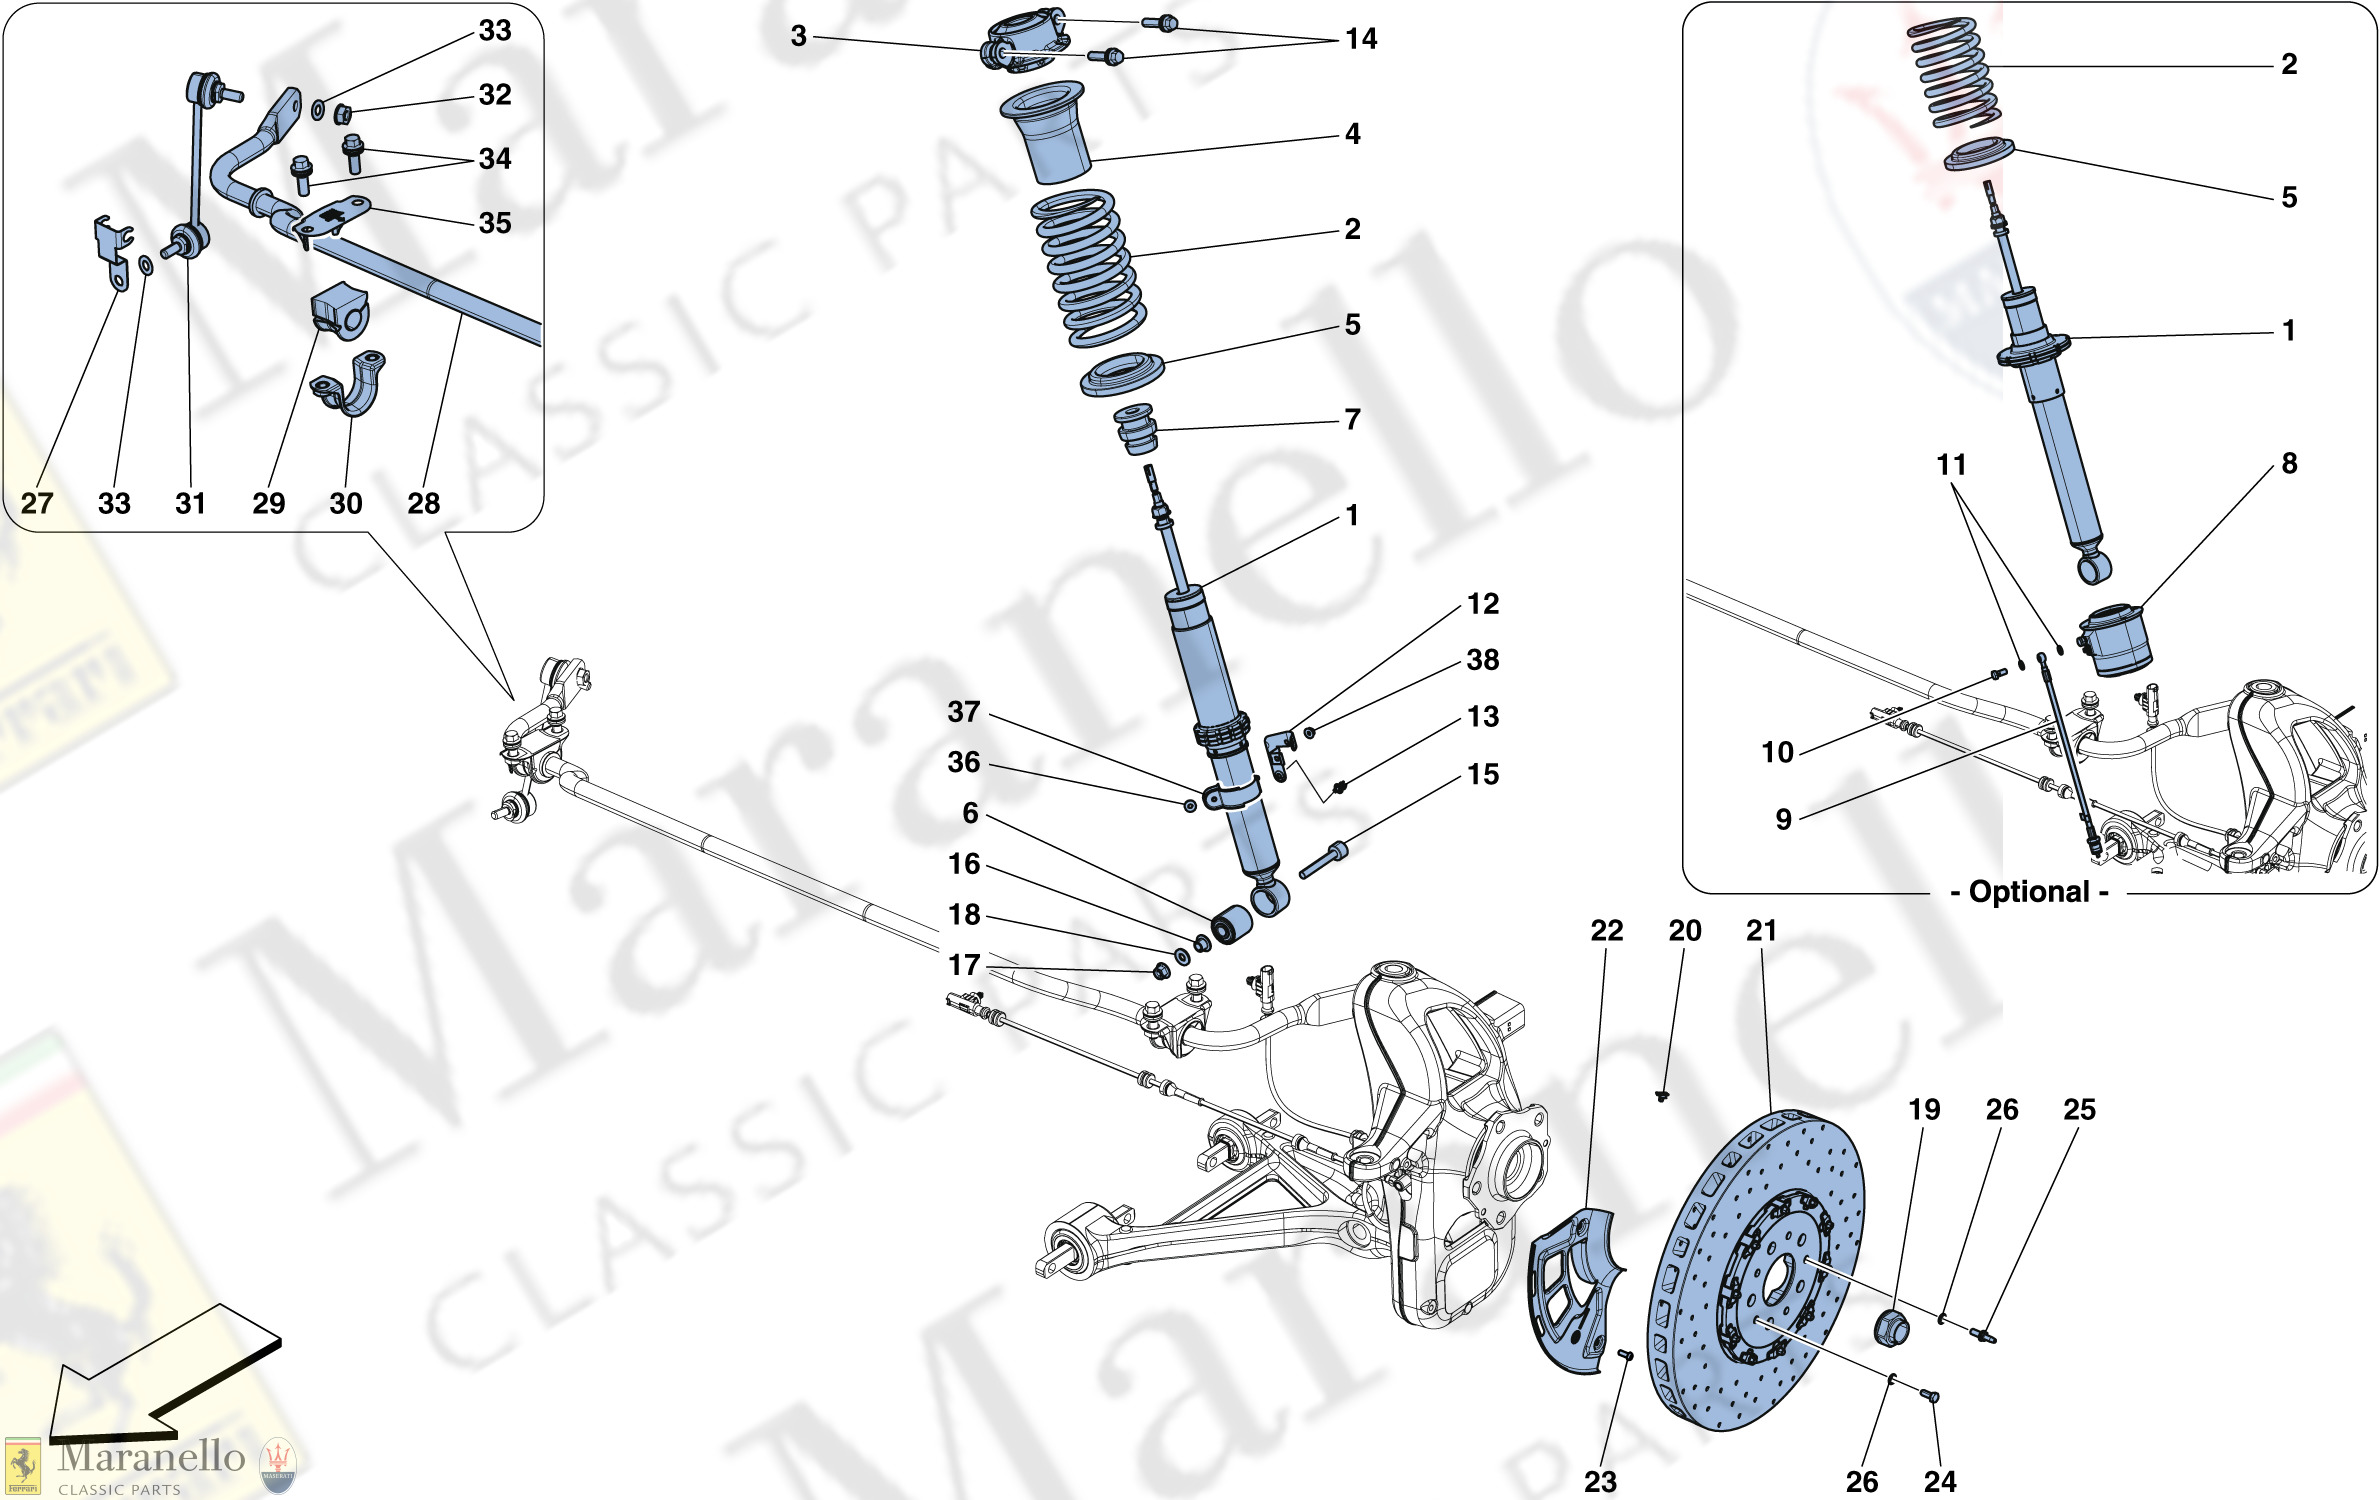 040 - Front Suspension - Shock Absorber And Brake Disc